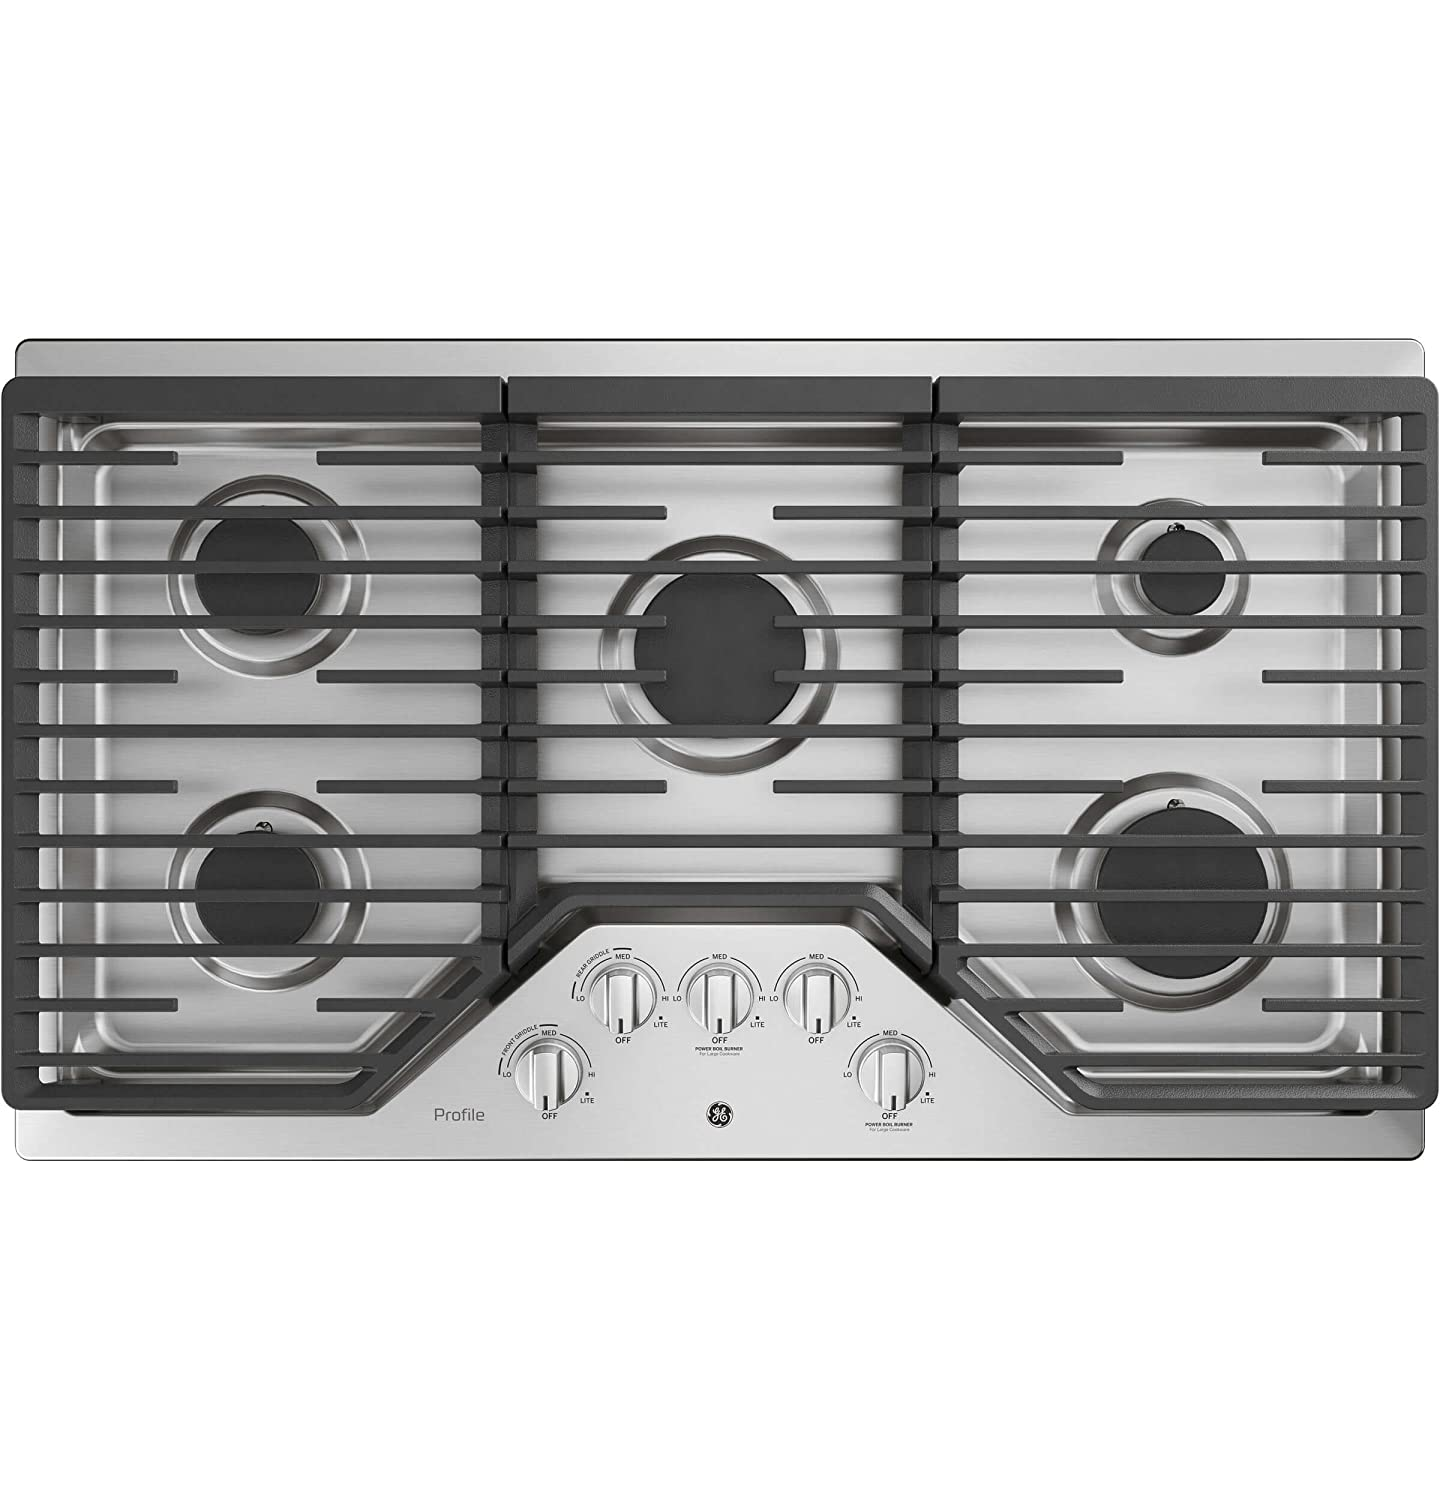 GE Profile PGP7036SLSS 36 Inch Natural Gas Sealed Burner Style Cooktop with 5 Burners, ADA Compliant, Electronic Ignition in Stainless Steel G.E. Profile